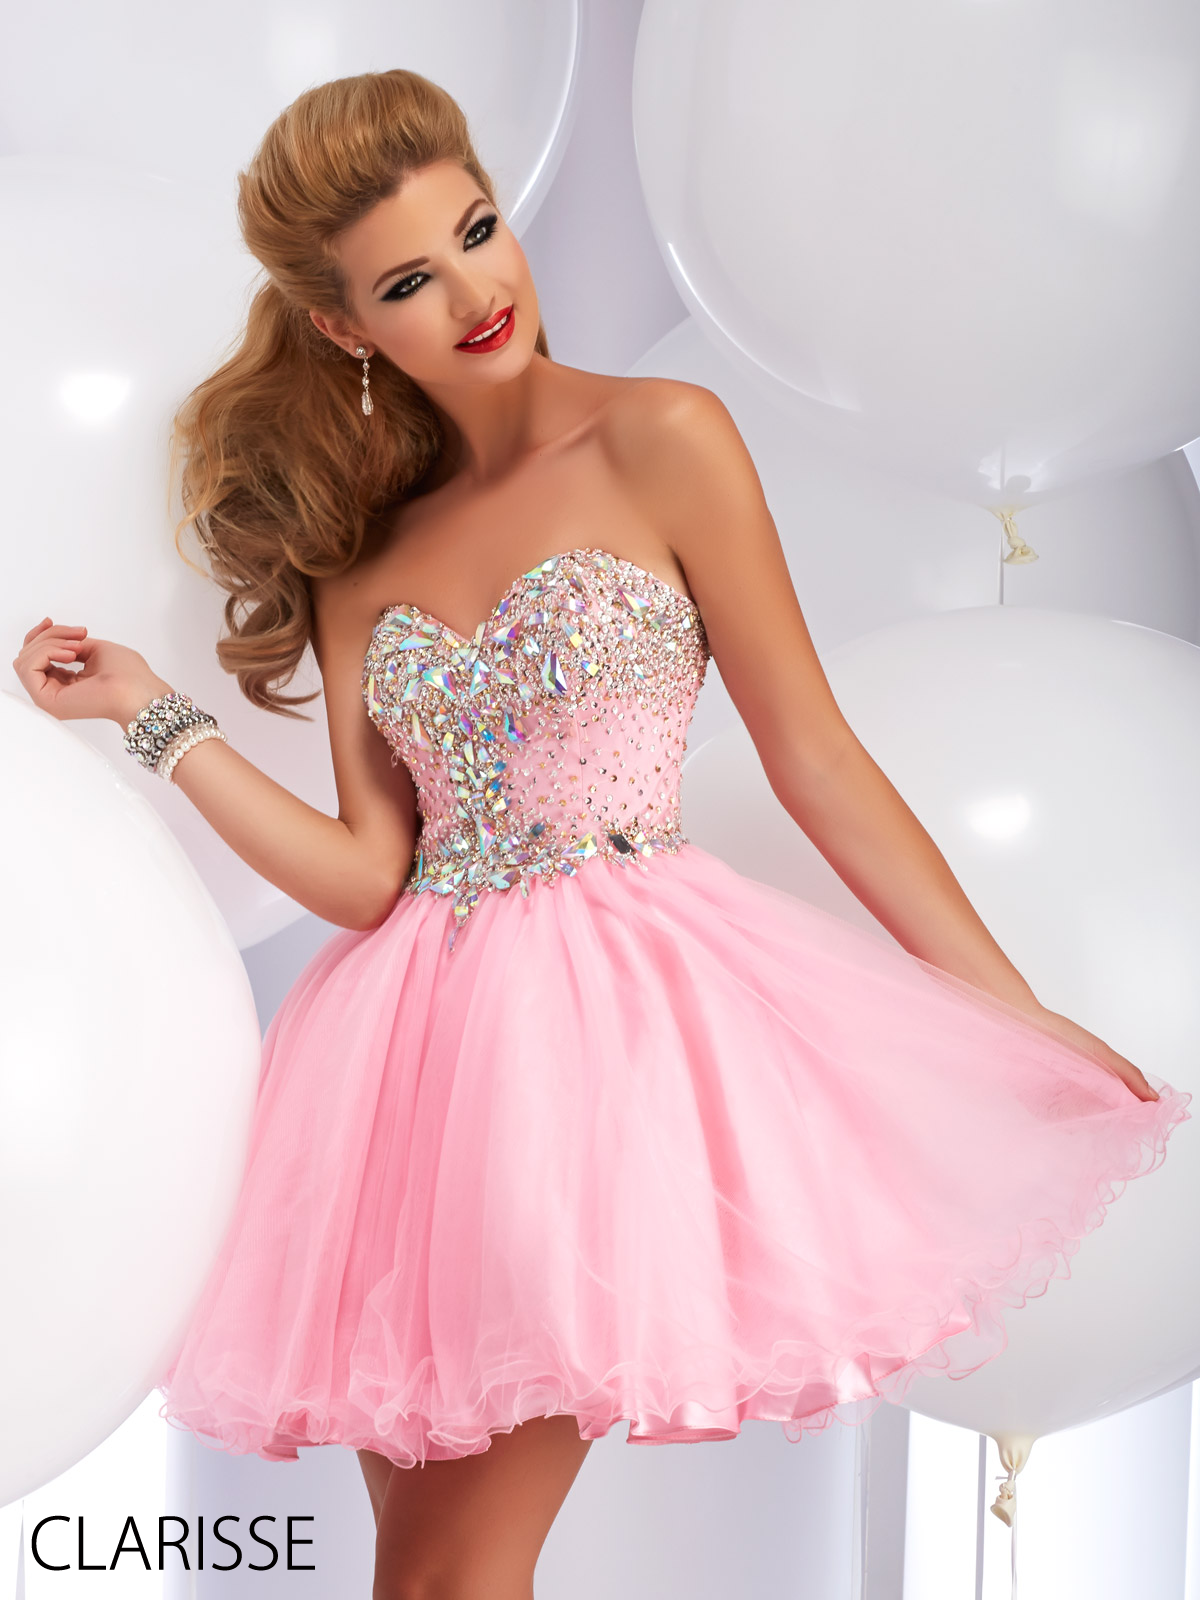 Bright Baby Pink Fun and Flirty Short 2016 Clarisse Prom Dress